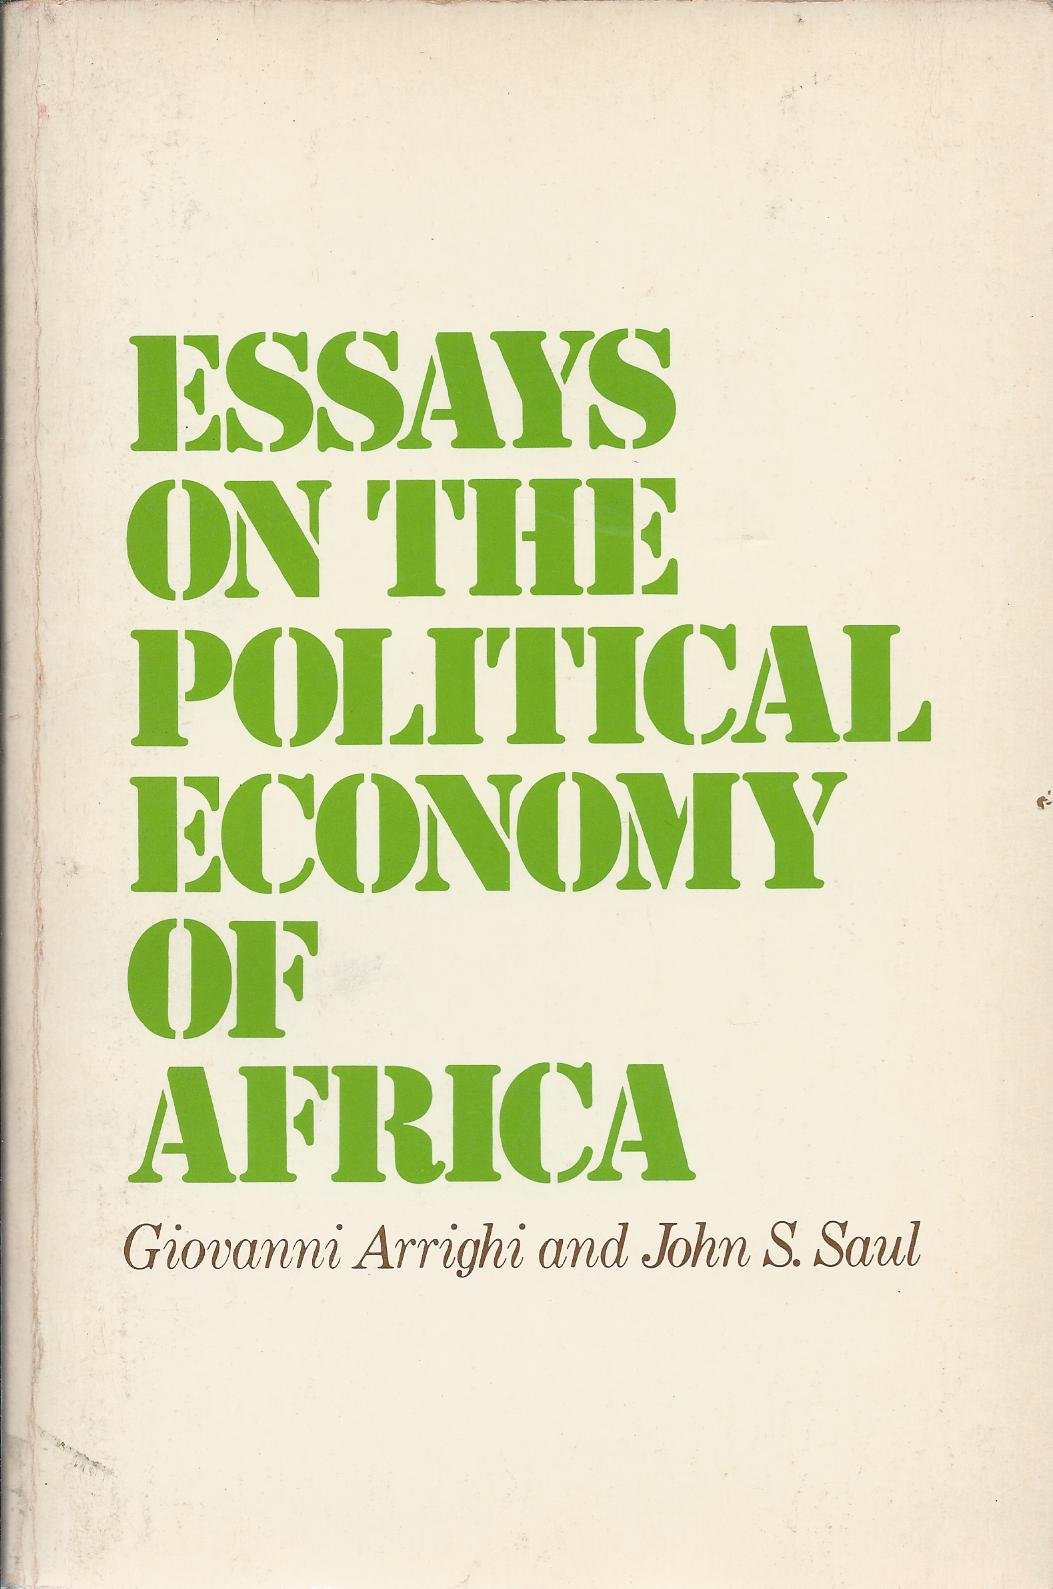 essays on the political economy of africa giovanni arrighi john  essays on the political economy of africa giovanni arrighi john s saul 9780853452508 com books